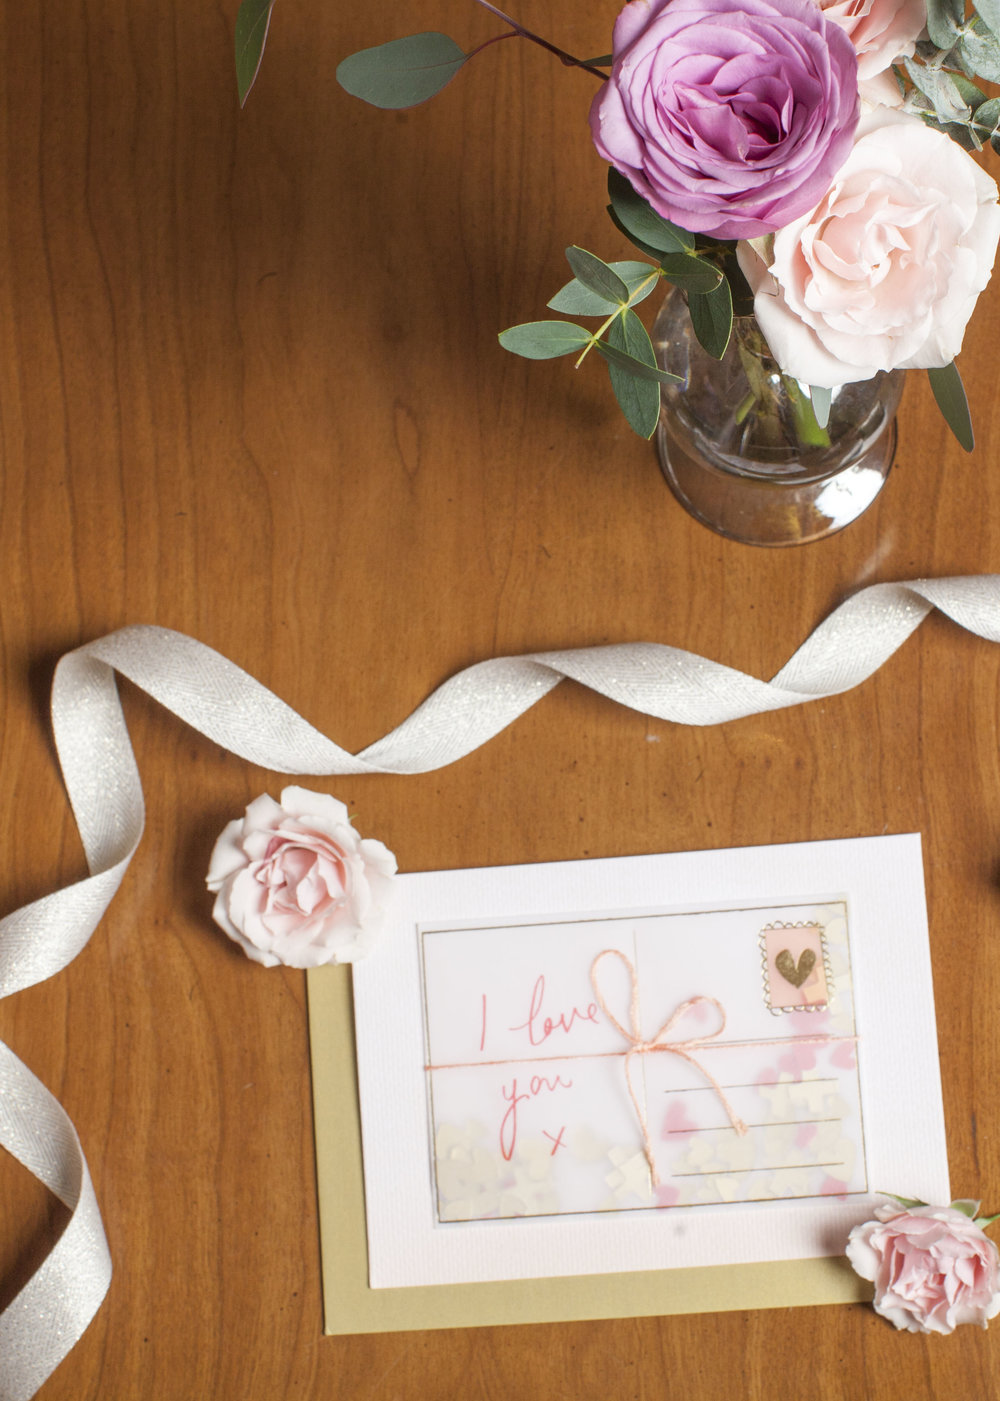 A bud vase and I love you card is a simple way to decorate a night stand or desk.